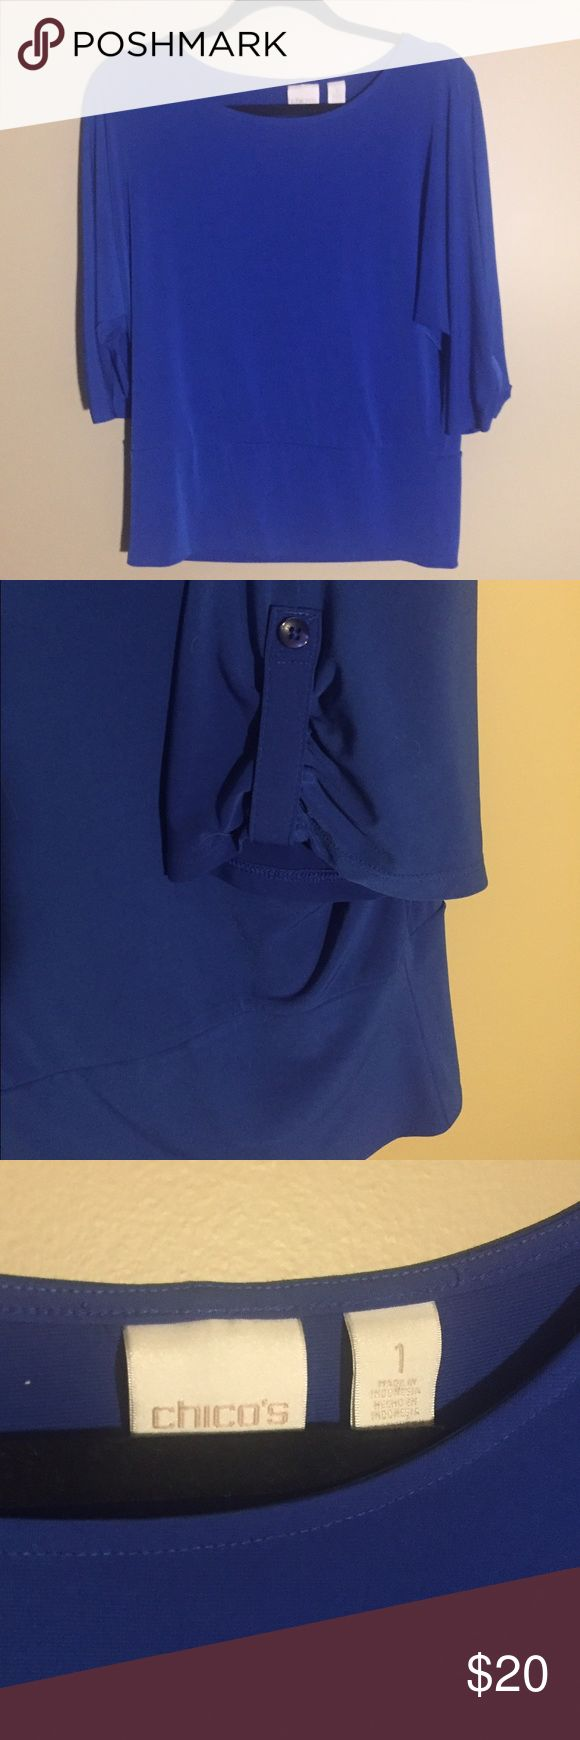 Chico's beautiful blue top size 1 / medium Hardly worn and beautiful blue. Batwing sleeve. Size 1 in Chicos sizes. Fits like medium; 96% polyester, 4% spandex. Chico's Tops Blouses